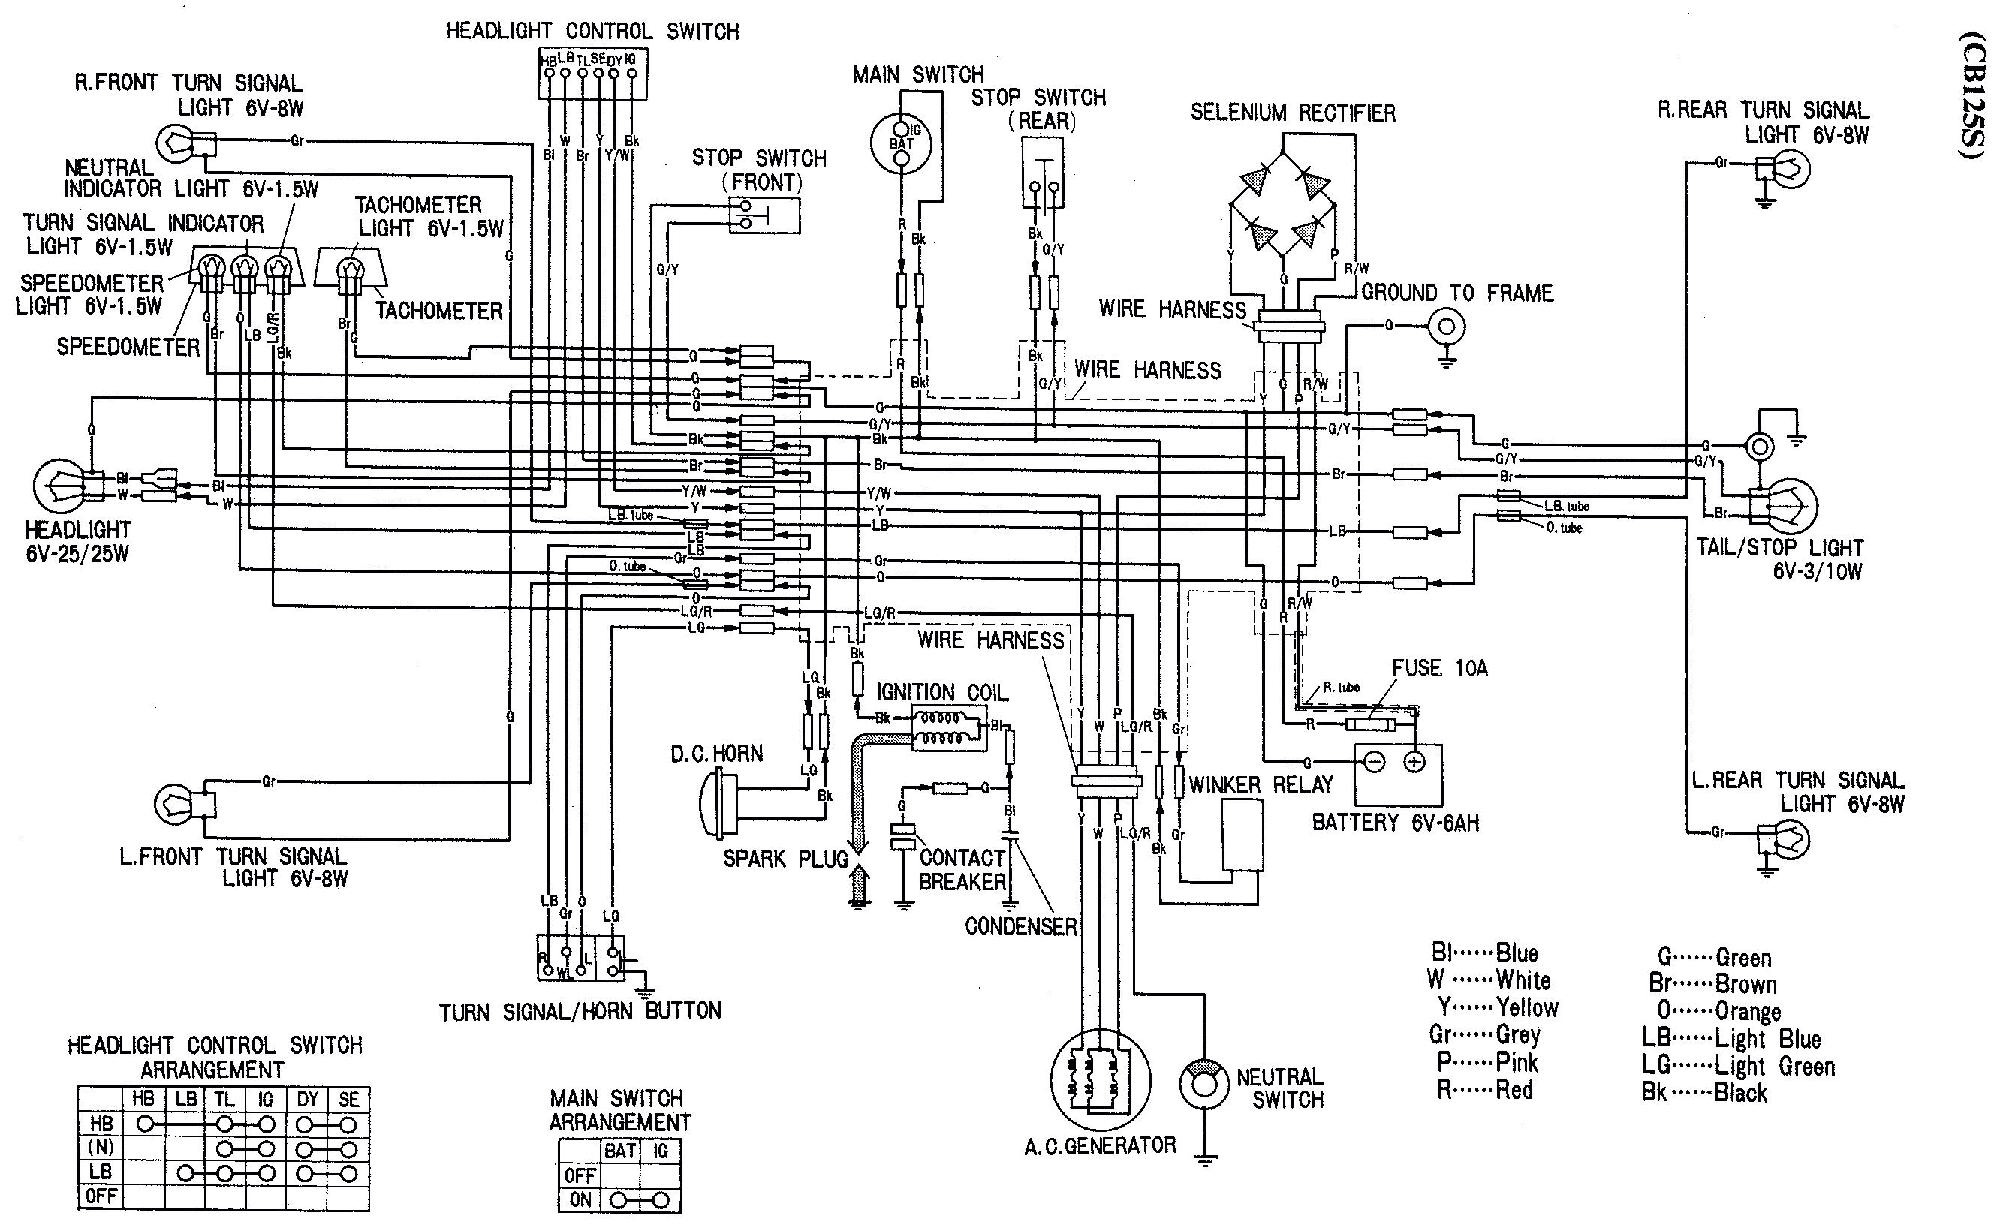 hight resolution of cb125 wiring with no key or kill switch honda motorcycle wiring diagrams cb125 wiring with no